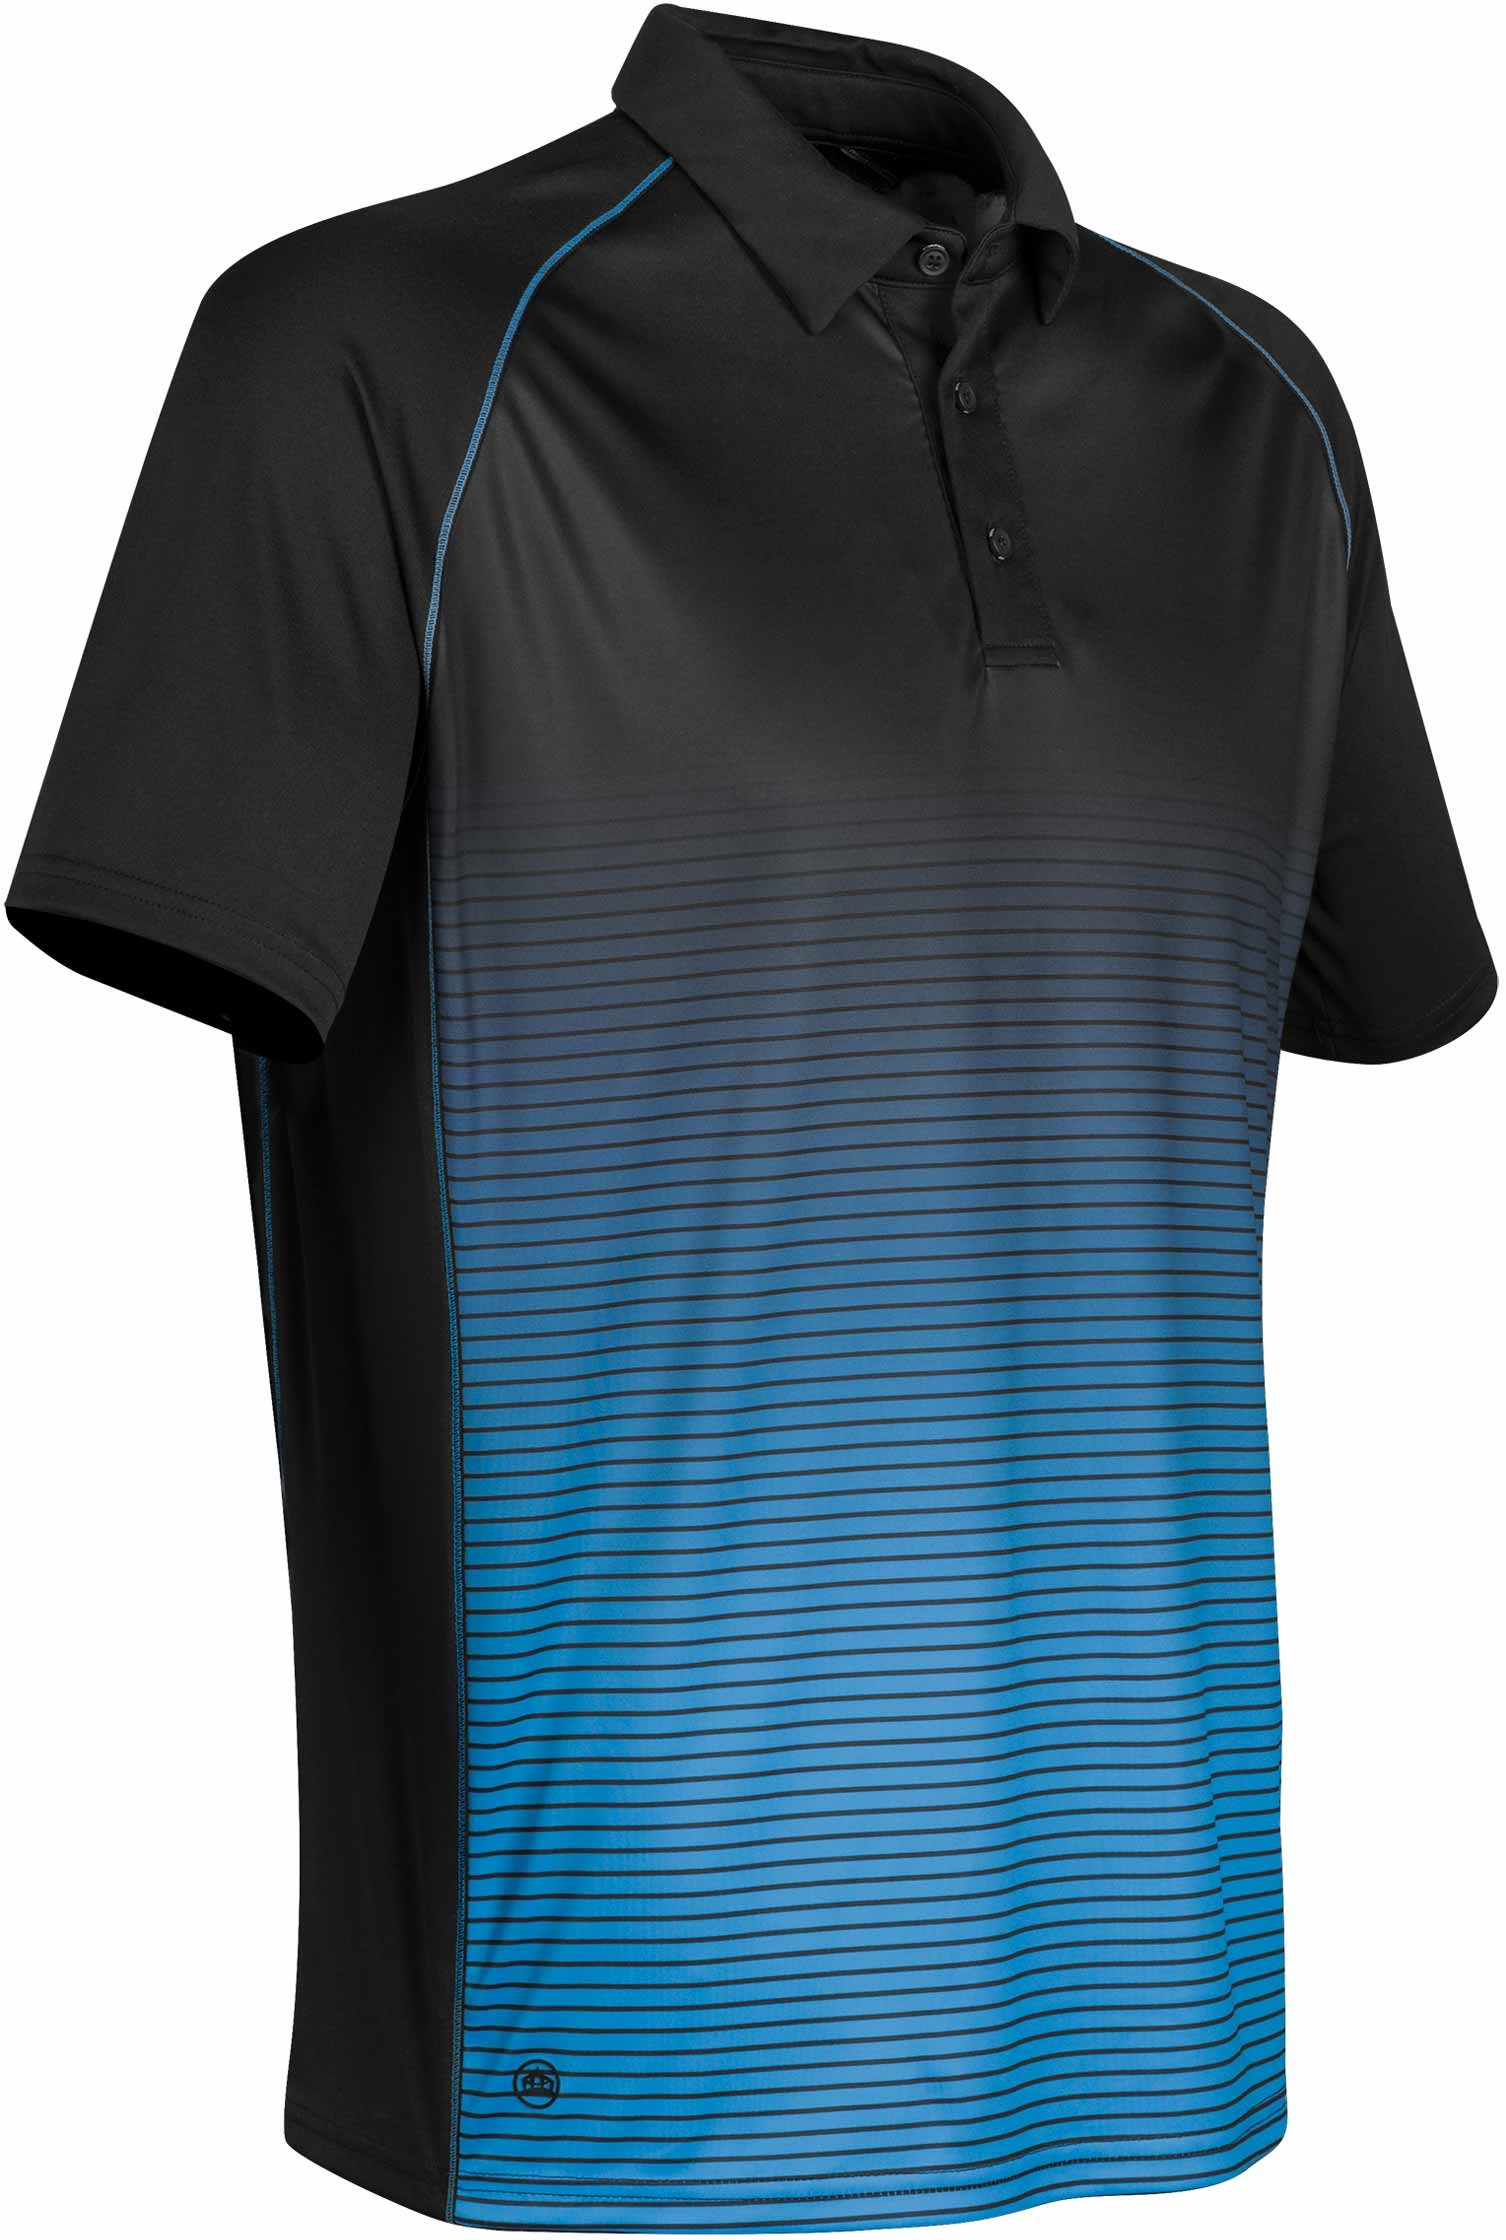 Stormtech Men's Horizon Polo